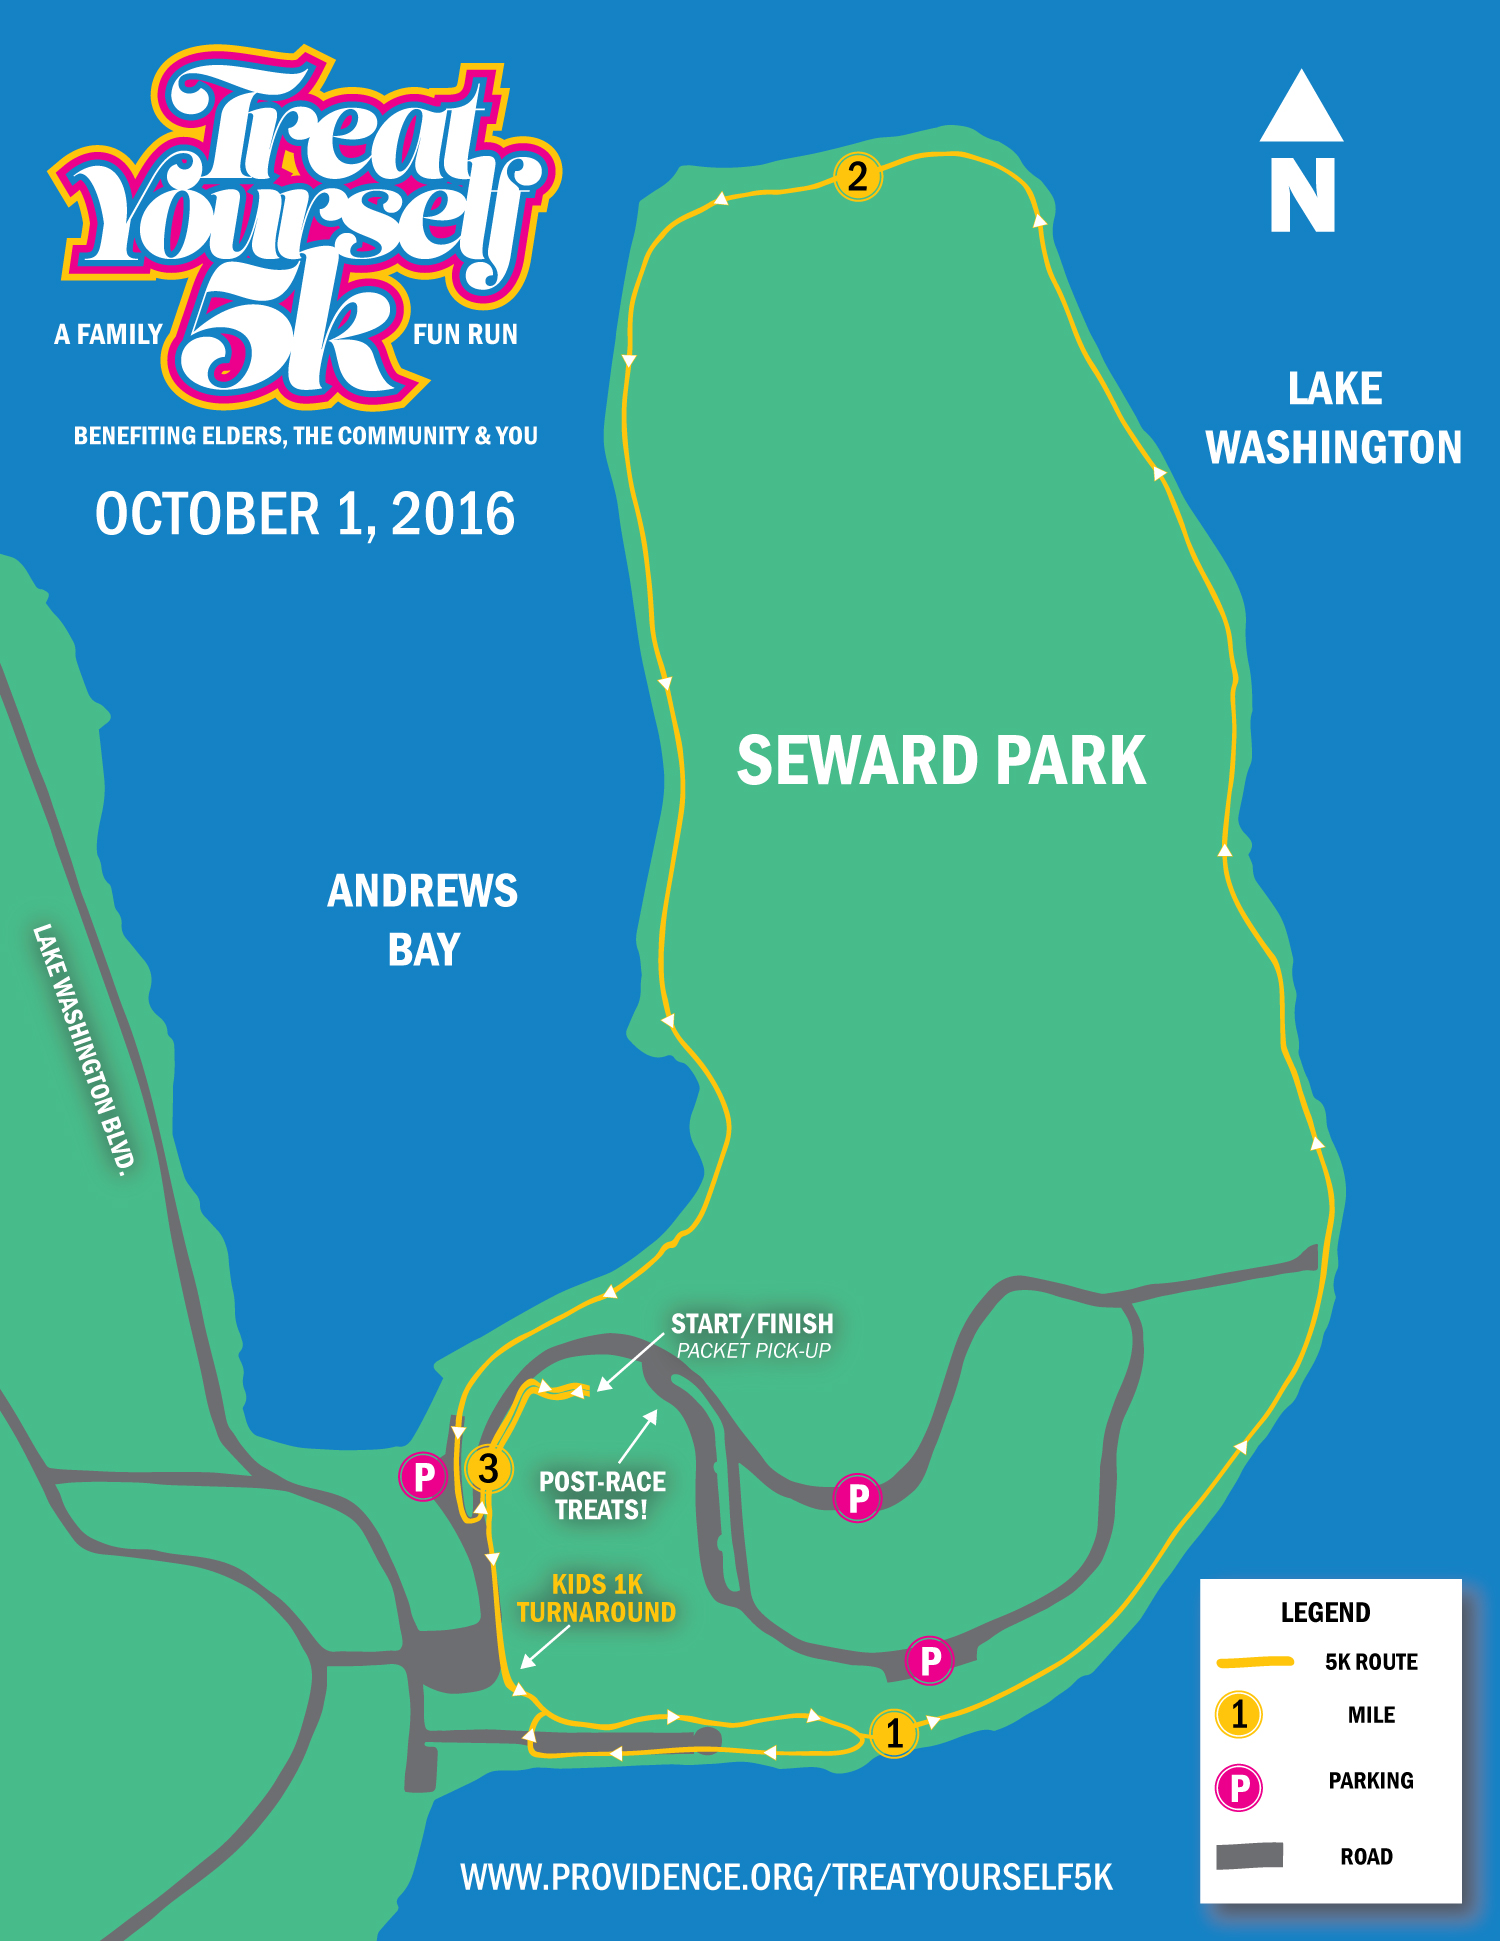 Treat Yourself 5k: A Family Fun Run Benefiting Elders, the ... on boston park map, bay alaska map, johnson park map, carkeek park map, genesee park map, volunteer park map, louisville park map, los angeles park map, lincoln park map, alki point map, frontier park map, webster park map, crown hill map, kenai fjords alaska map, taylor park map, anchorage park map, jacobs creek park map, derry township park map, lake wilderness park map, elm creek park map,